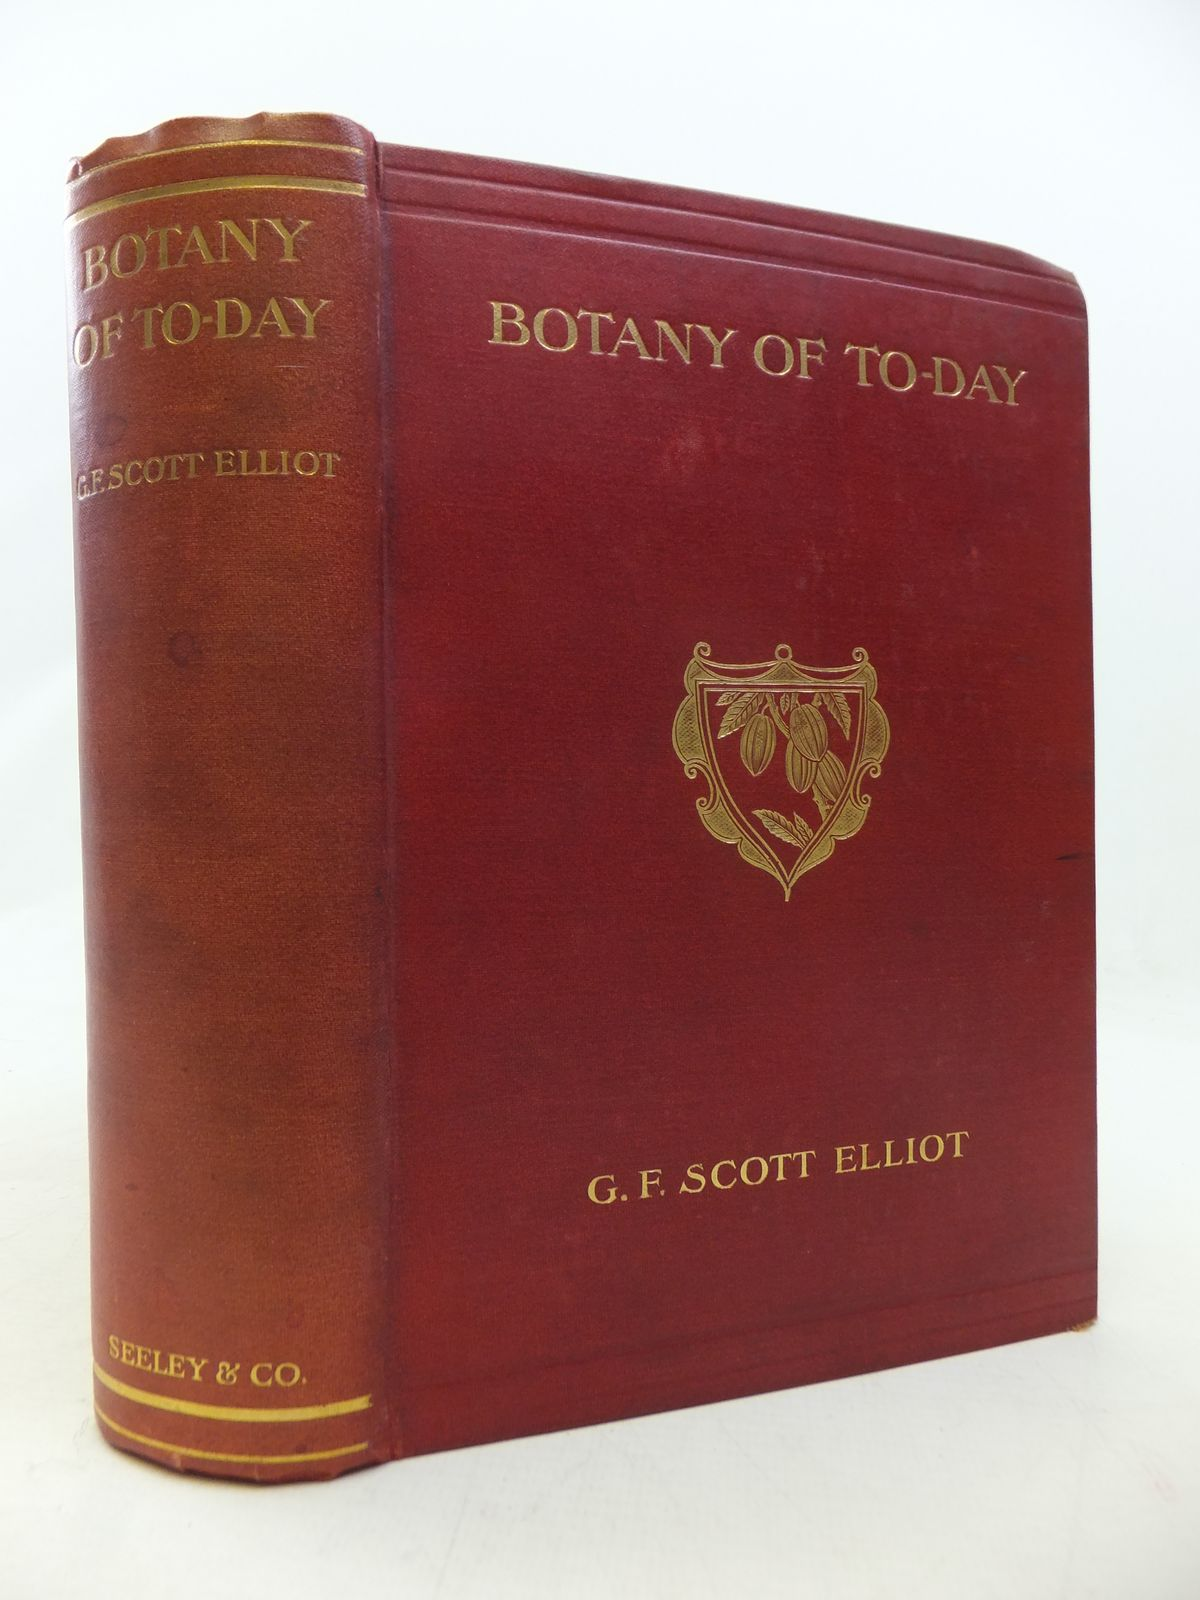 Photo of BOTANY OF TO-DAY A POPULAR ACCOUNT OF RECENT NOTABLE DISCOVERIES written by Elliot, G.F. Scott published by Seeley and Co. Limited (STOCK CODE: 1809142)  for sale by Stella & Rose's Books